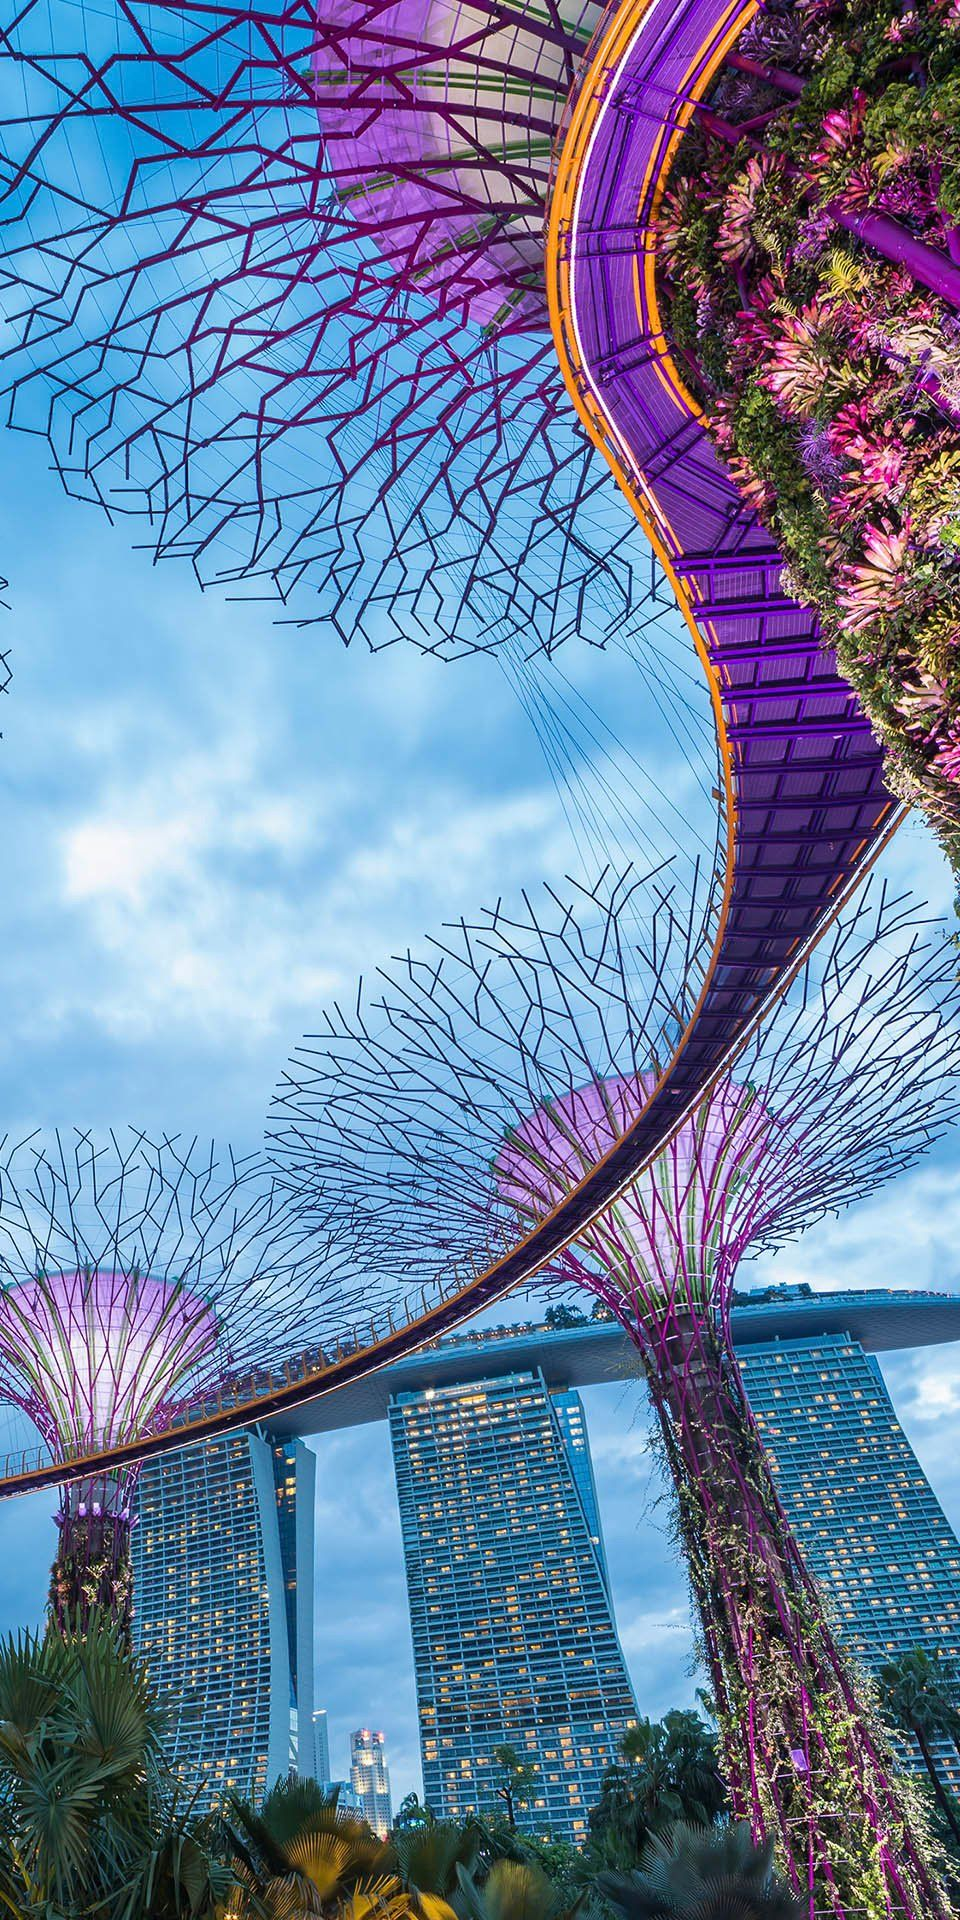 Singapore Supertree Grove at Gardens by the Bay offers